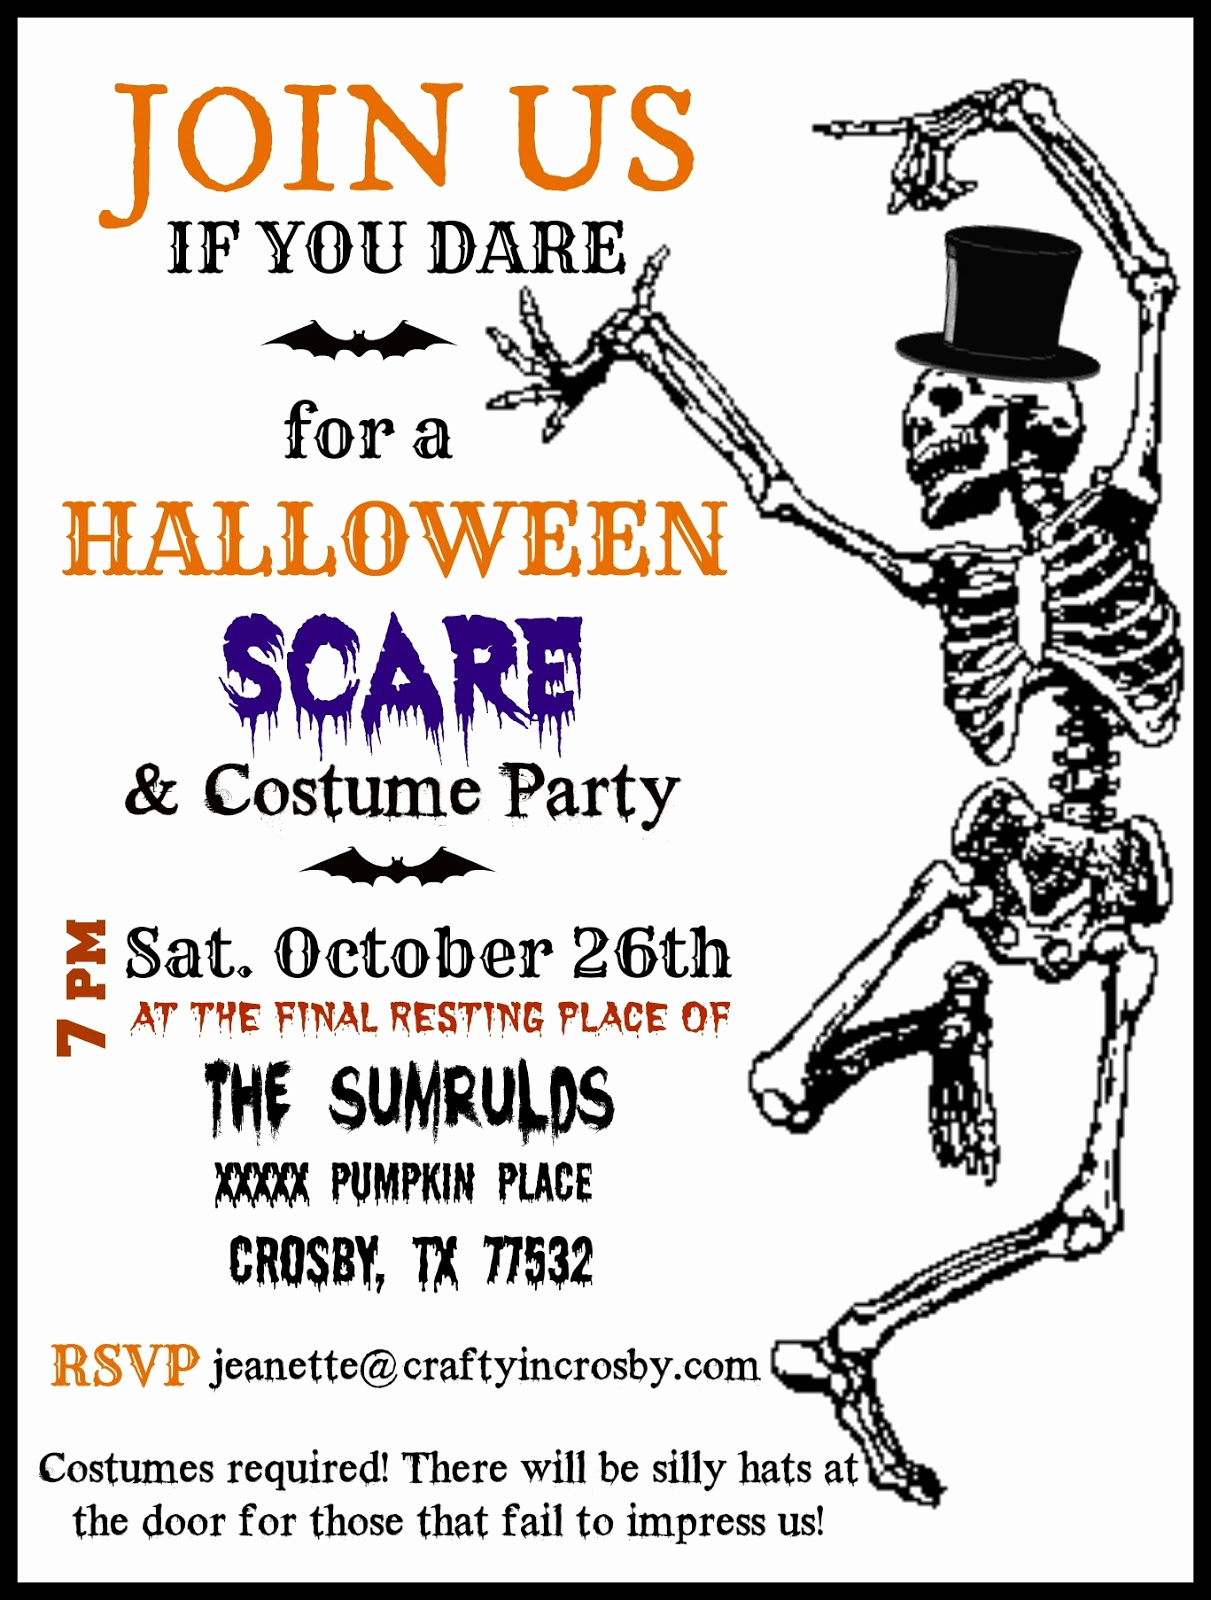 Halloween Party Invite Template Inspirational Crafty In Crosby Halloween Party Invitations with Template